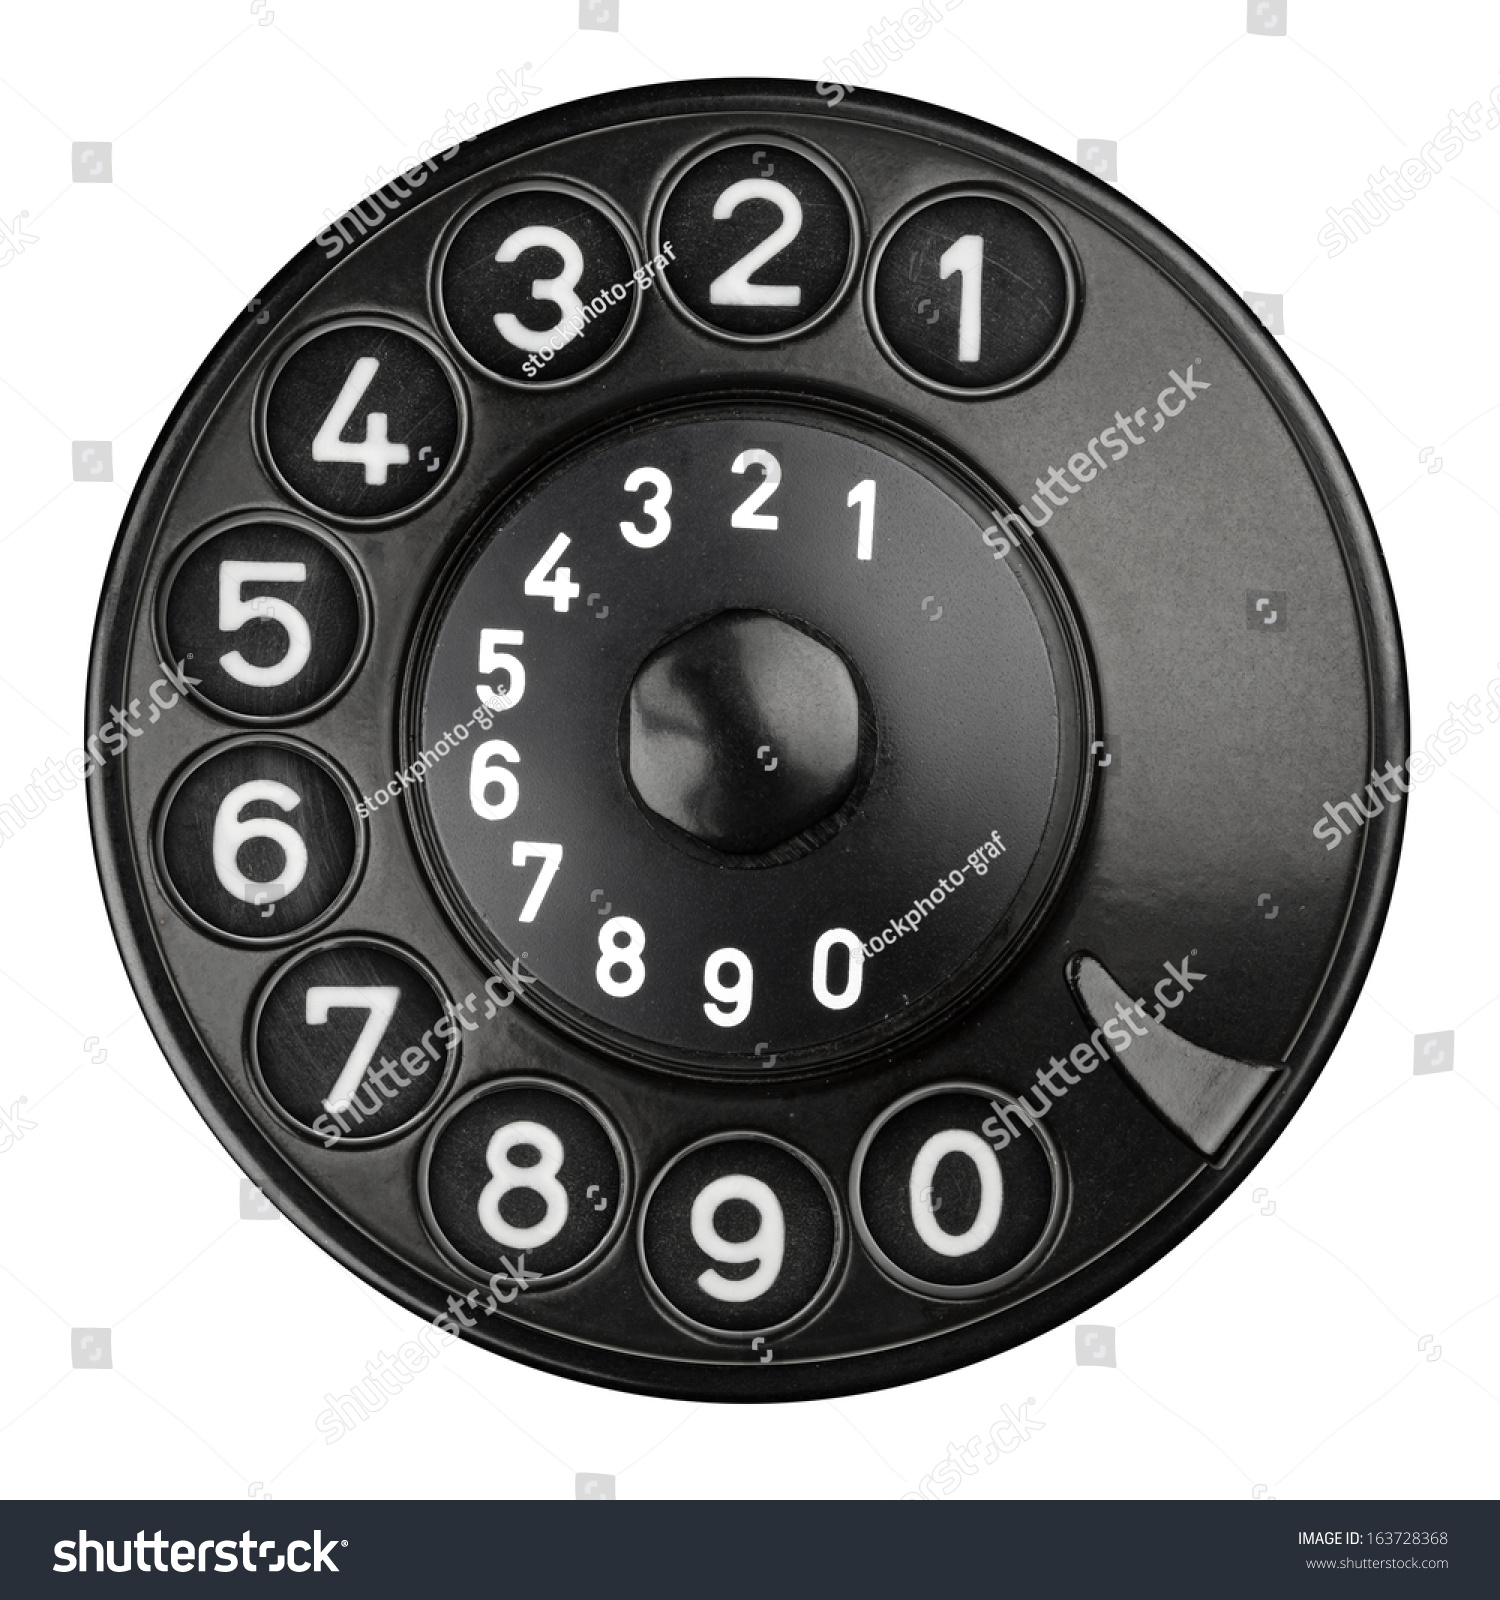 Rotary Dial Pad Old Telephone Stock Photo 163728368 - Shutterstock